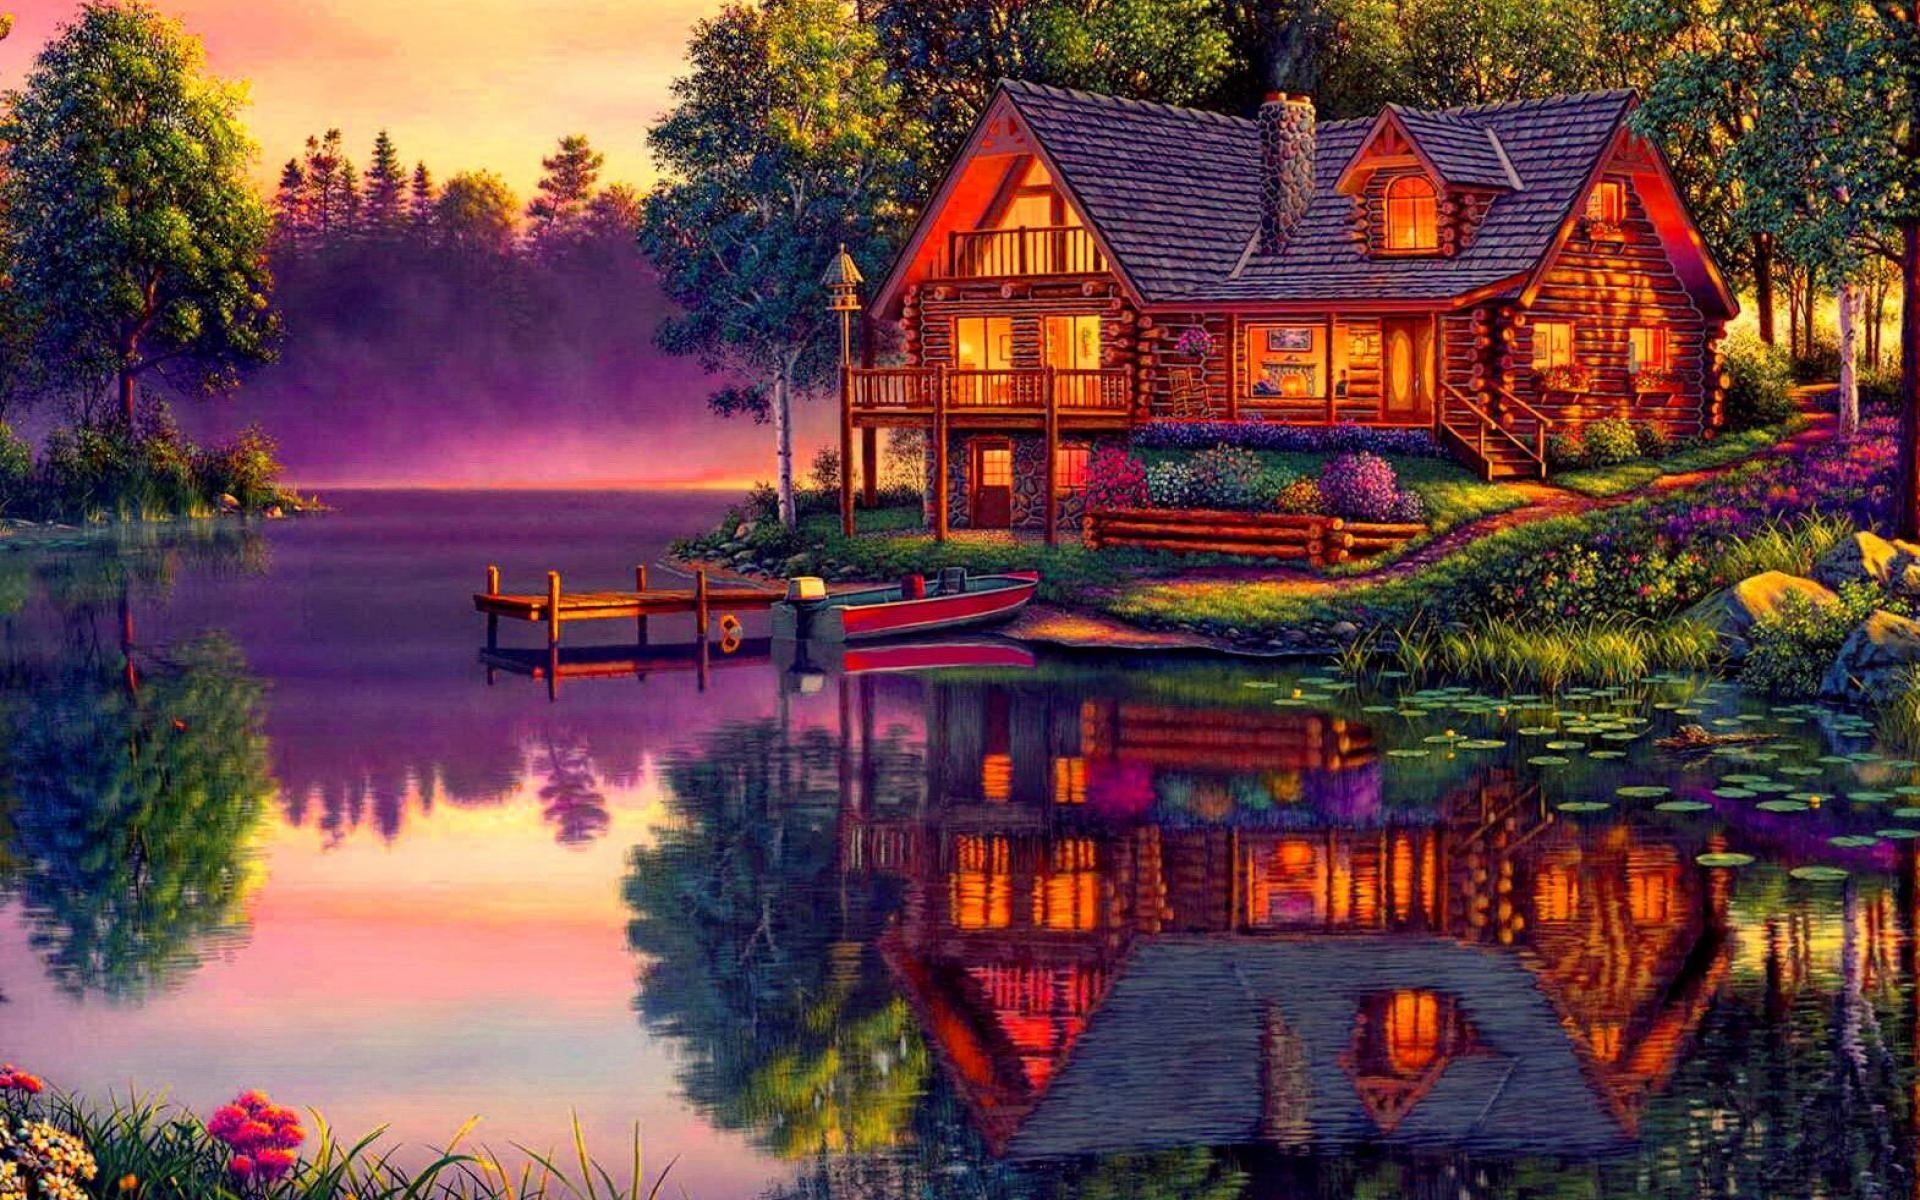 Haus am see wallpaper  Log Cabin on the Lake Full HD Wallpaper and Hintergrund ...